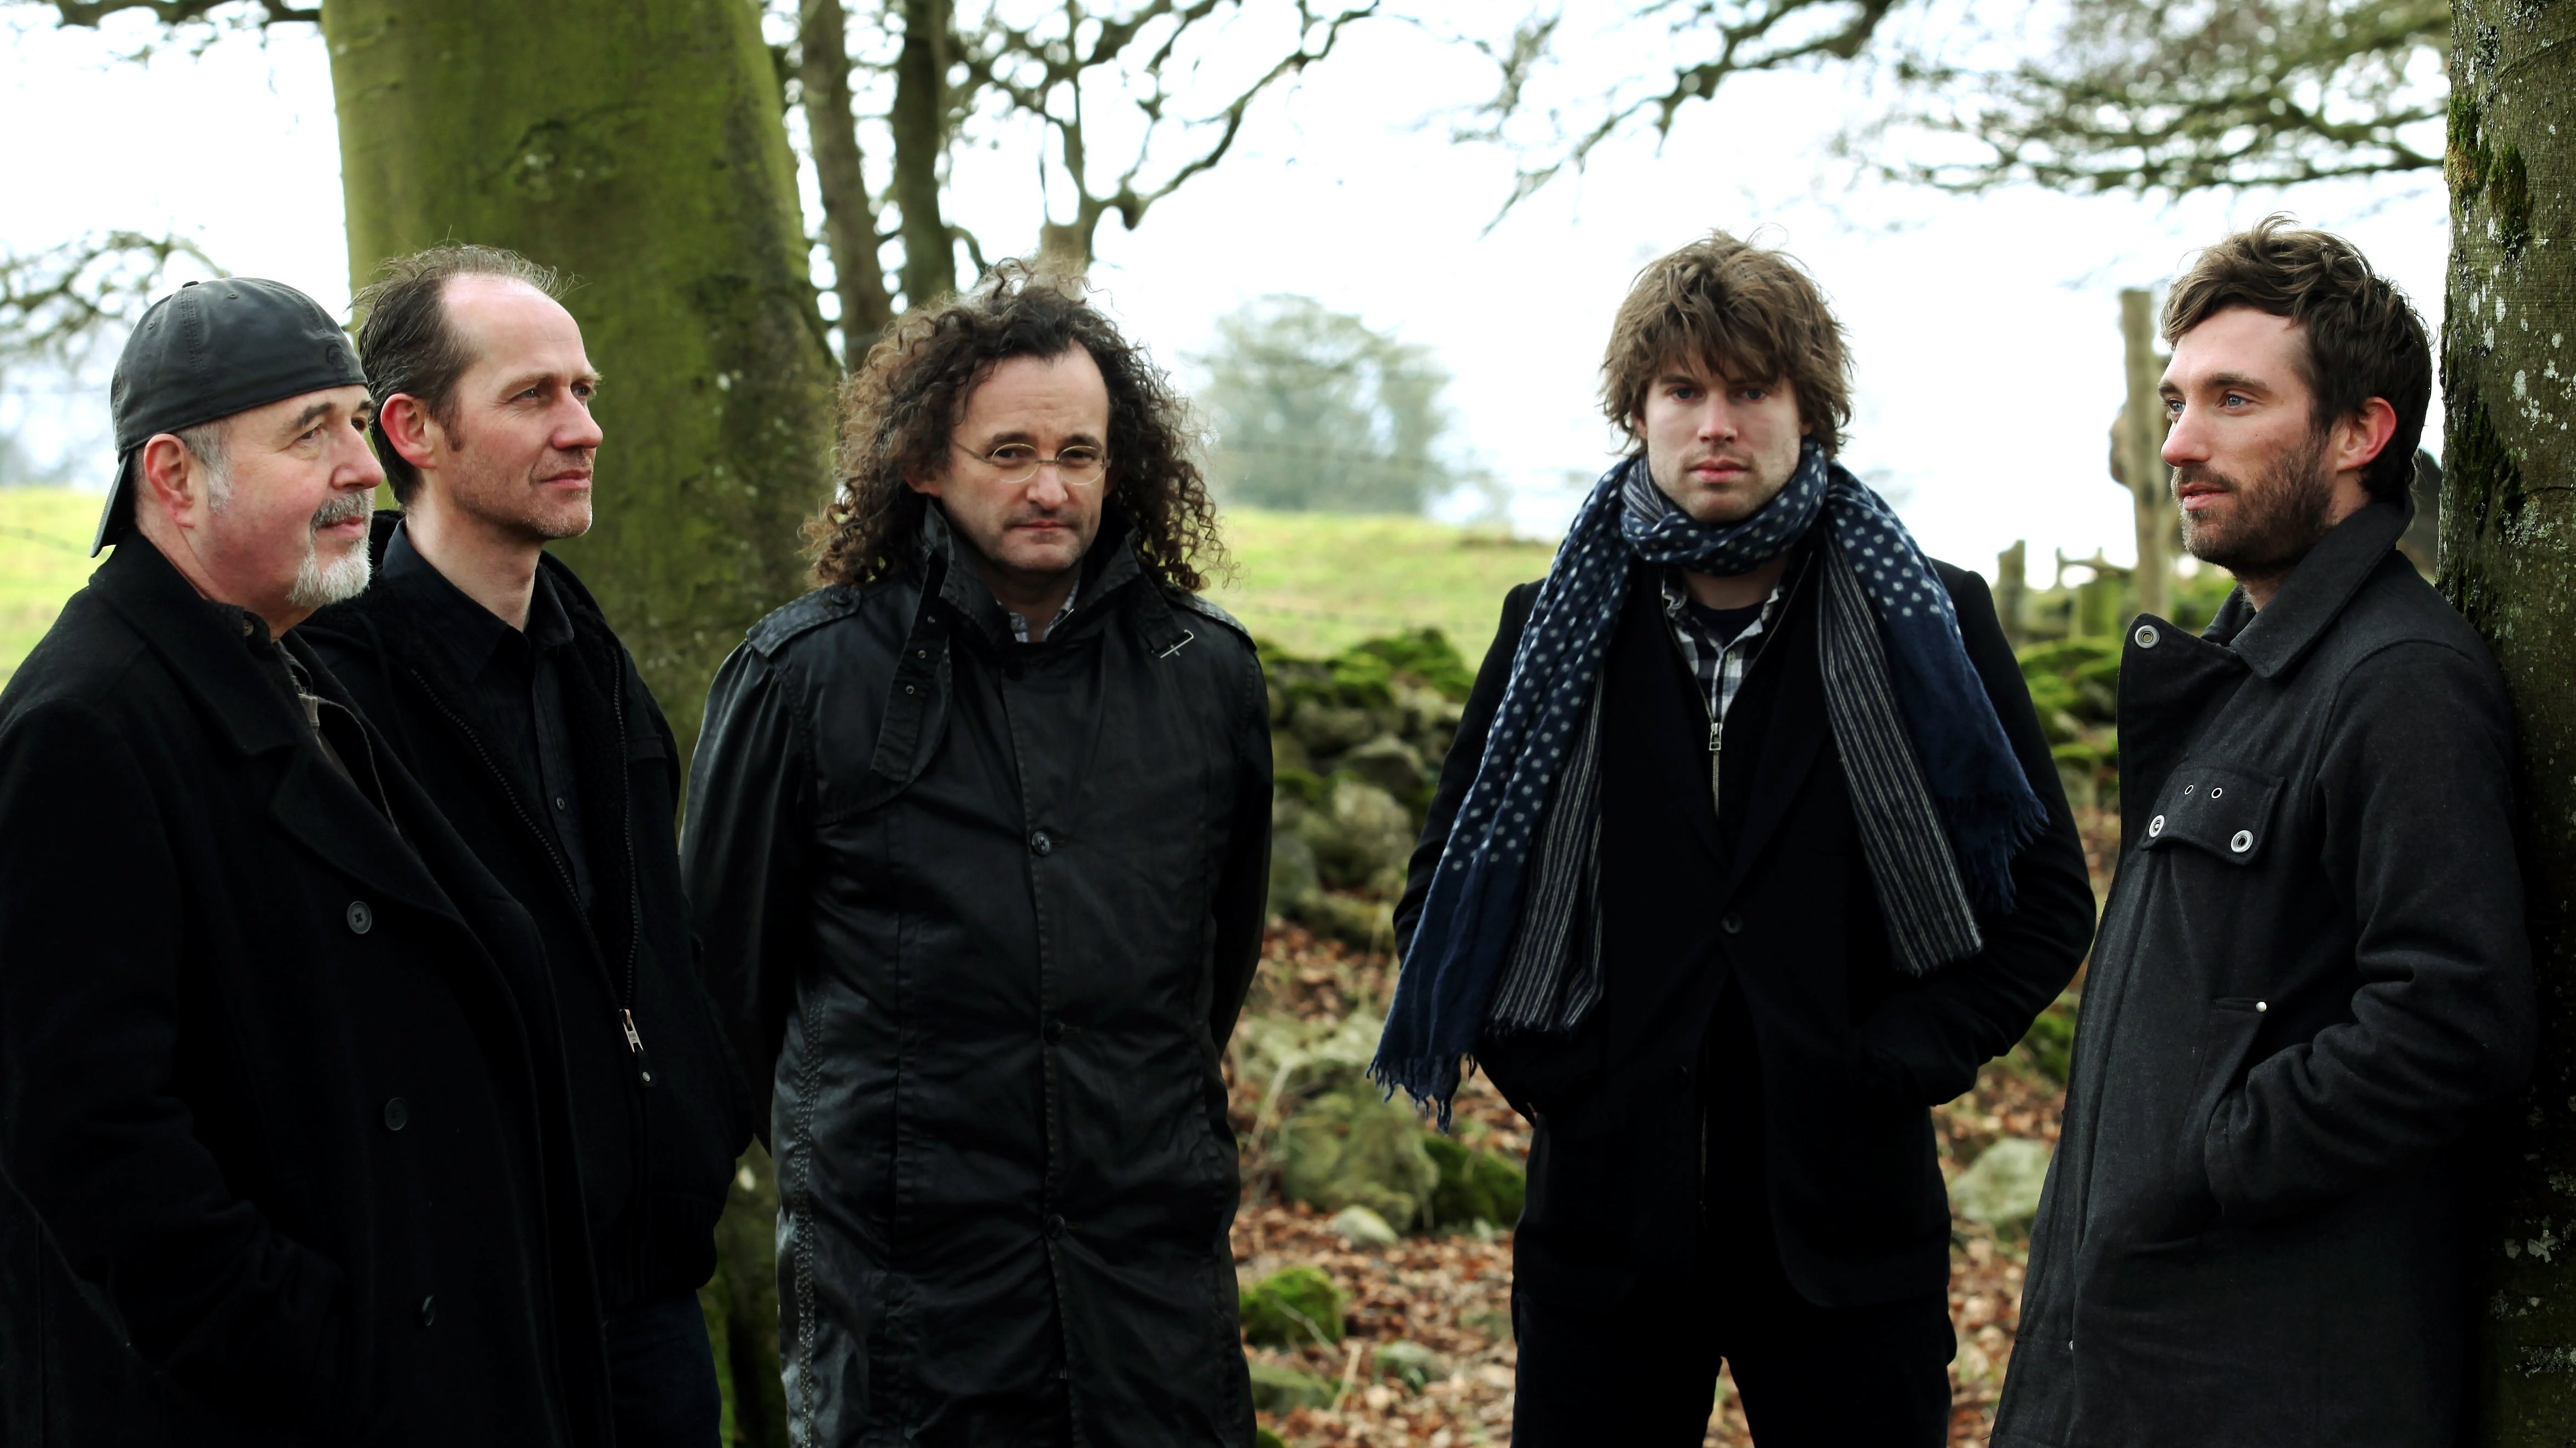 First Listen: The Gloaming, 'The Gloaming'